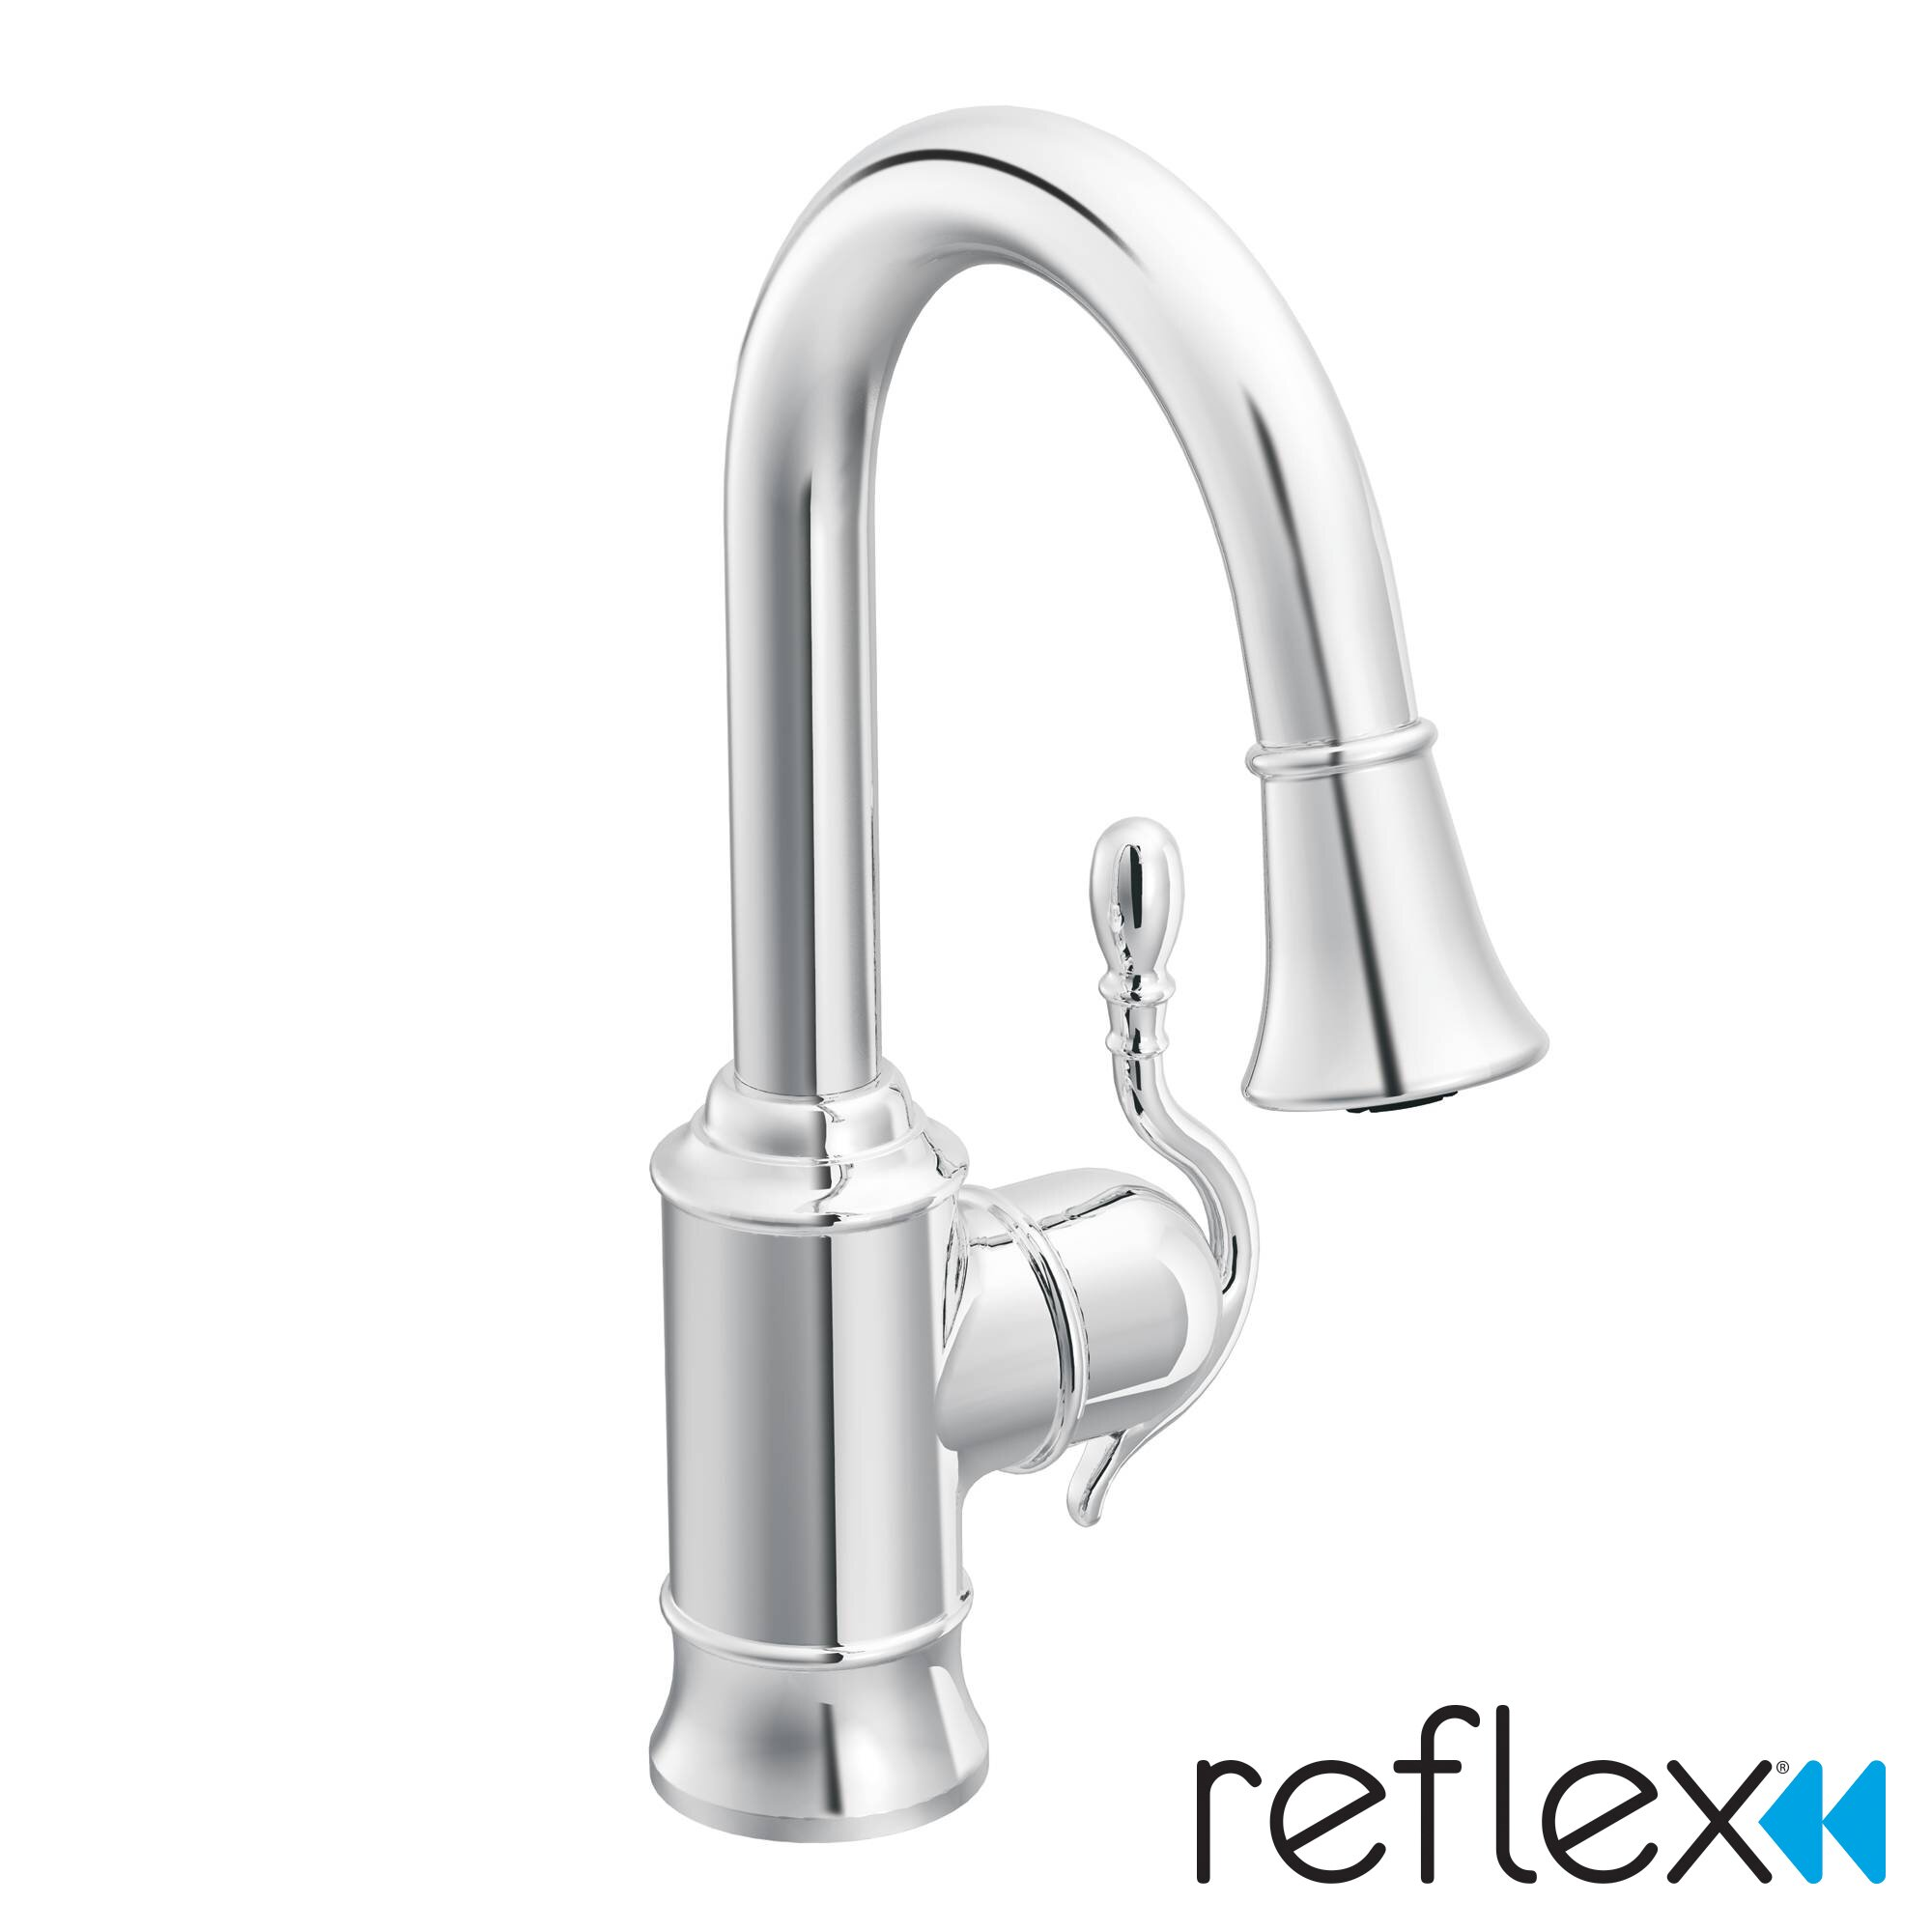 moen pull out kitchen faucet manual